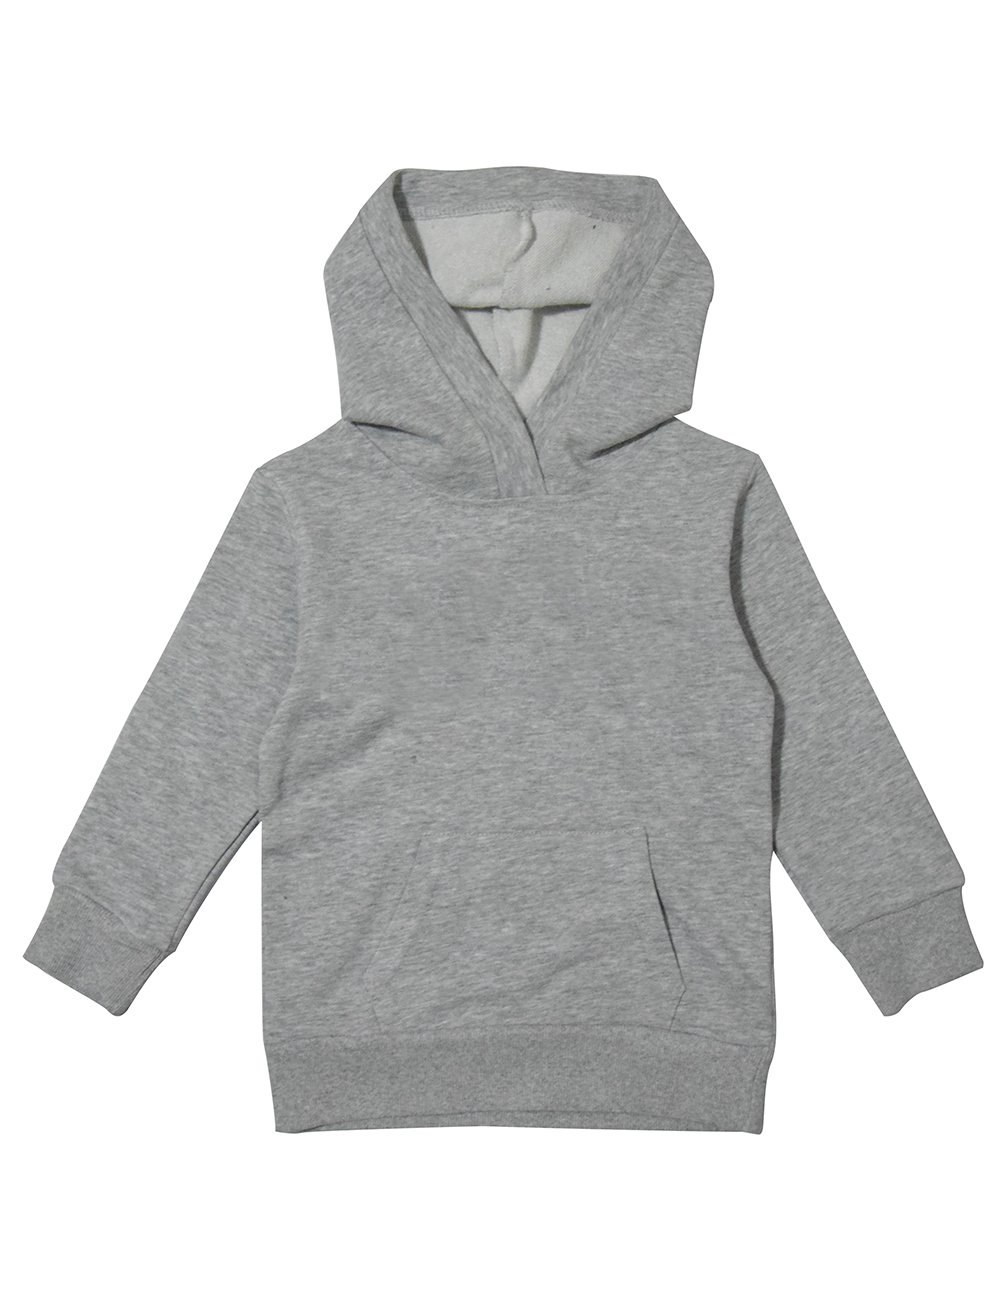 Spring&Gege Youth Solid Classic Hoodies Soft Hooded Sweatshirts for Children (2-12 Years)